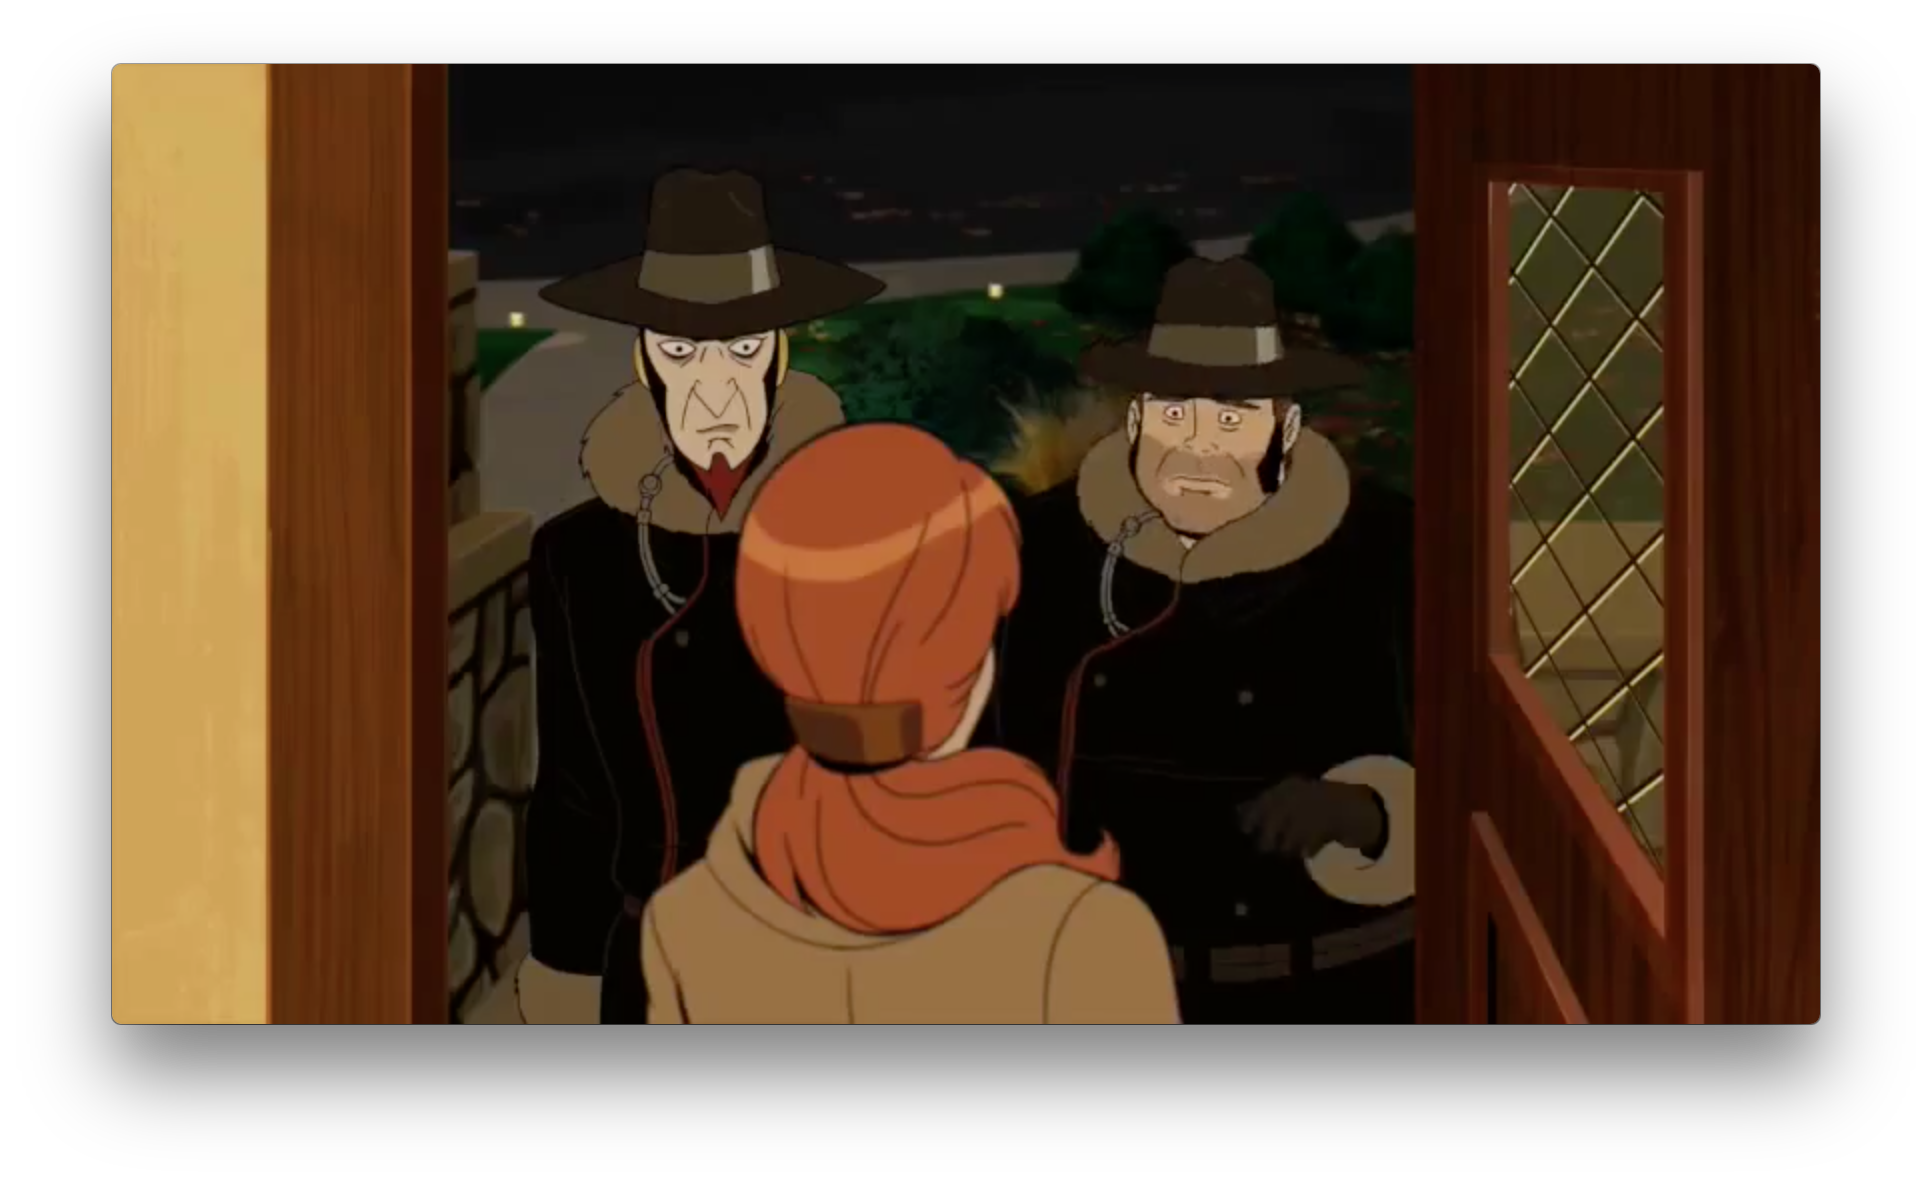 But The Monarch and Gary still have to work as Guild Strangers.Or are they undercover? Who are they visiting?